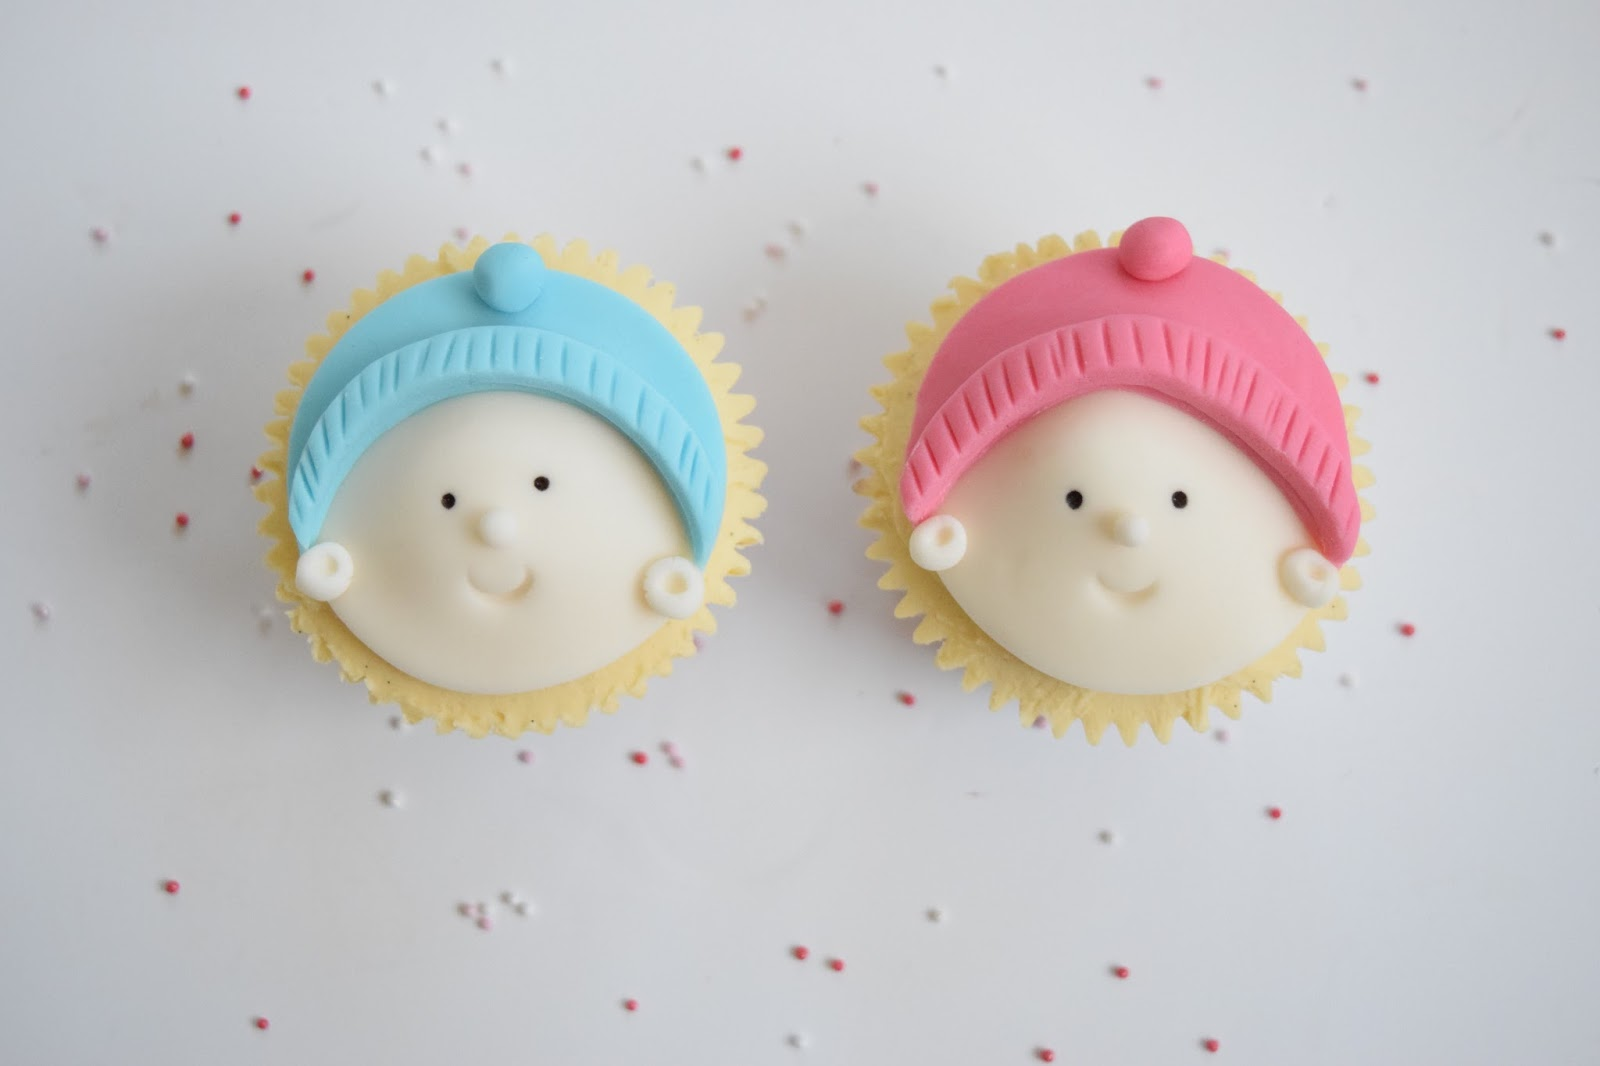 Baby Shower Cupcakes, Baby Boy Cupcakes, Fondant Face, Cute